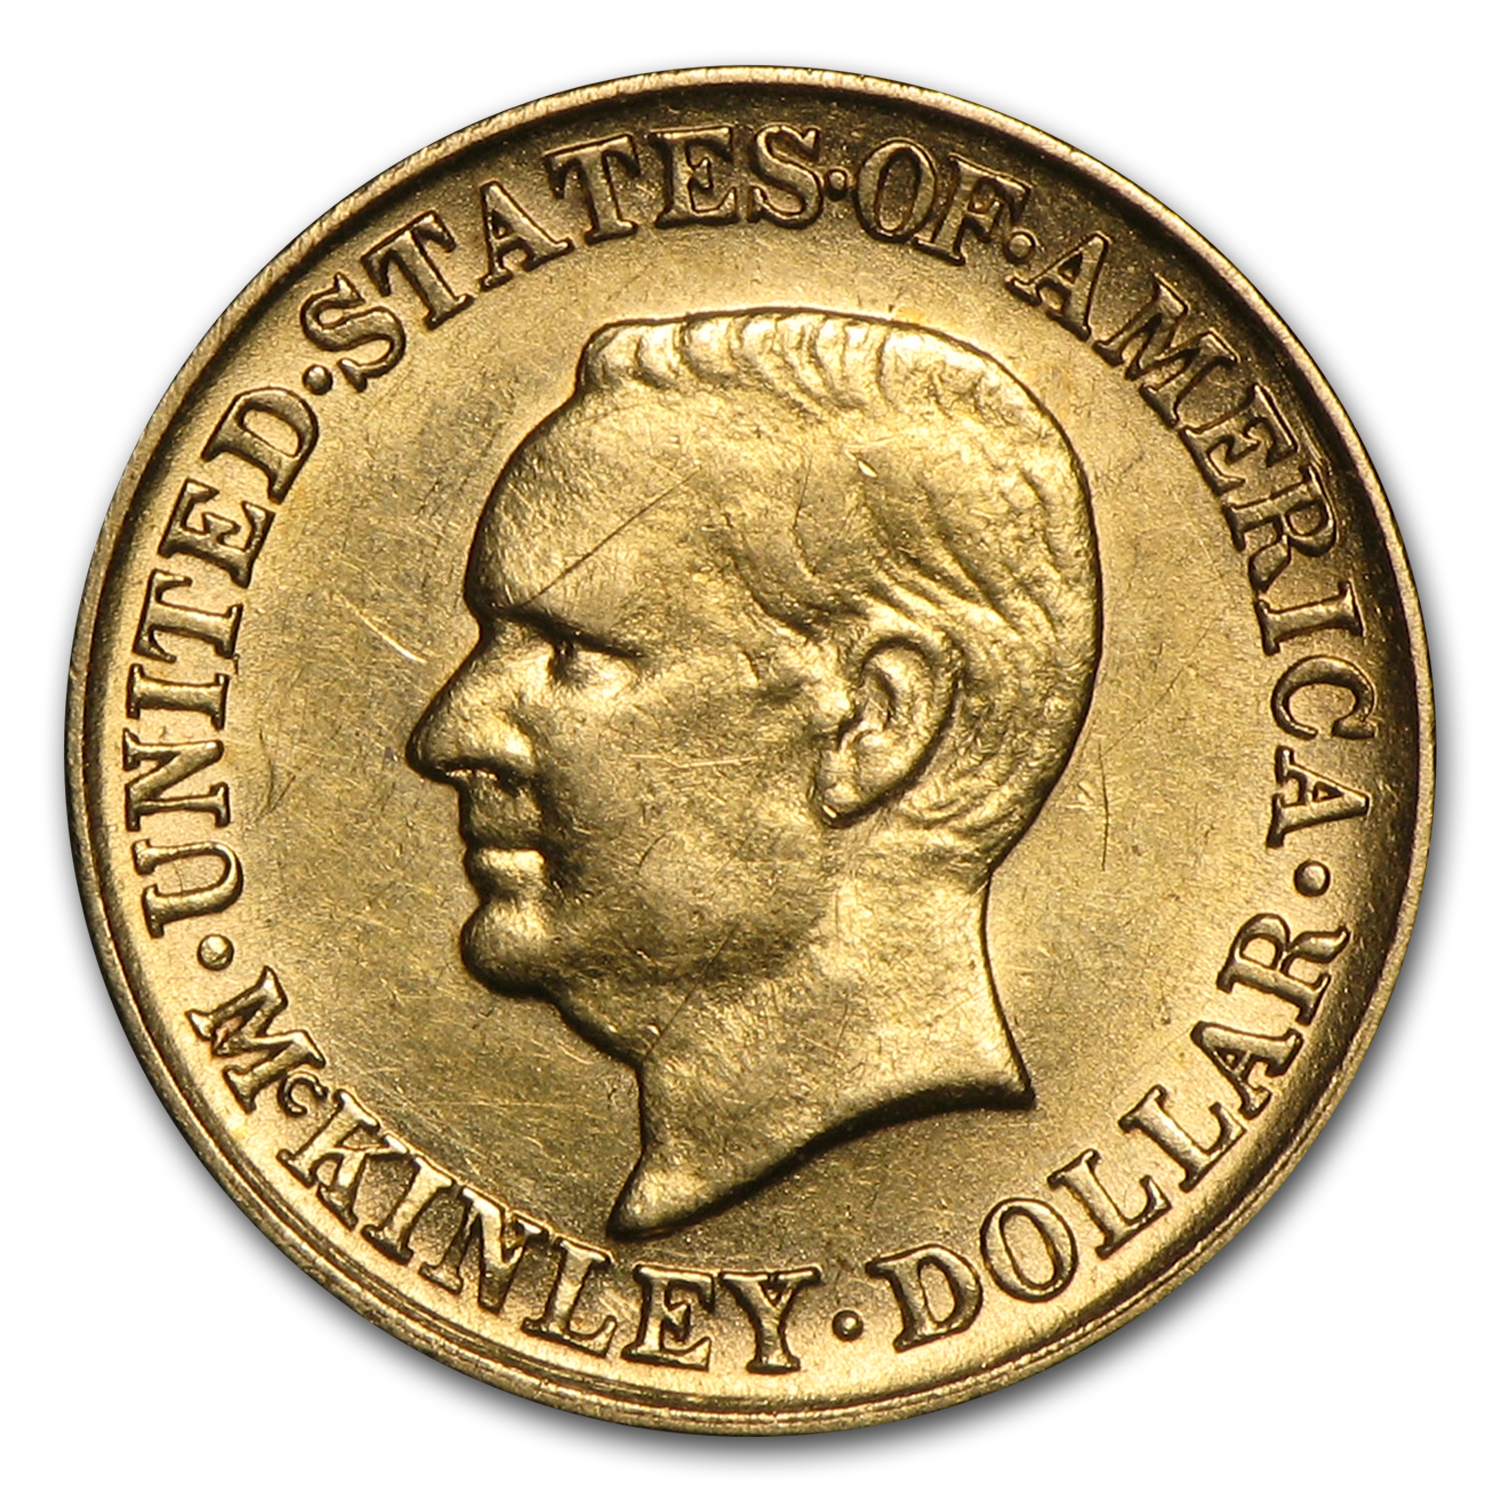 1916 Gold $1.00 McKinley Memorial AU